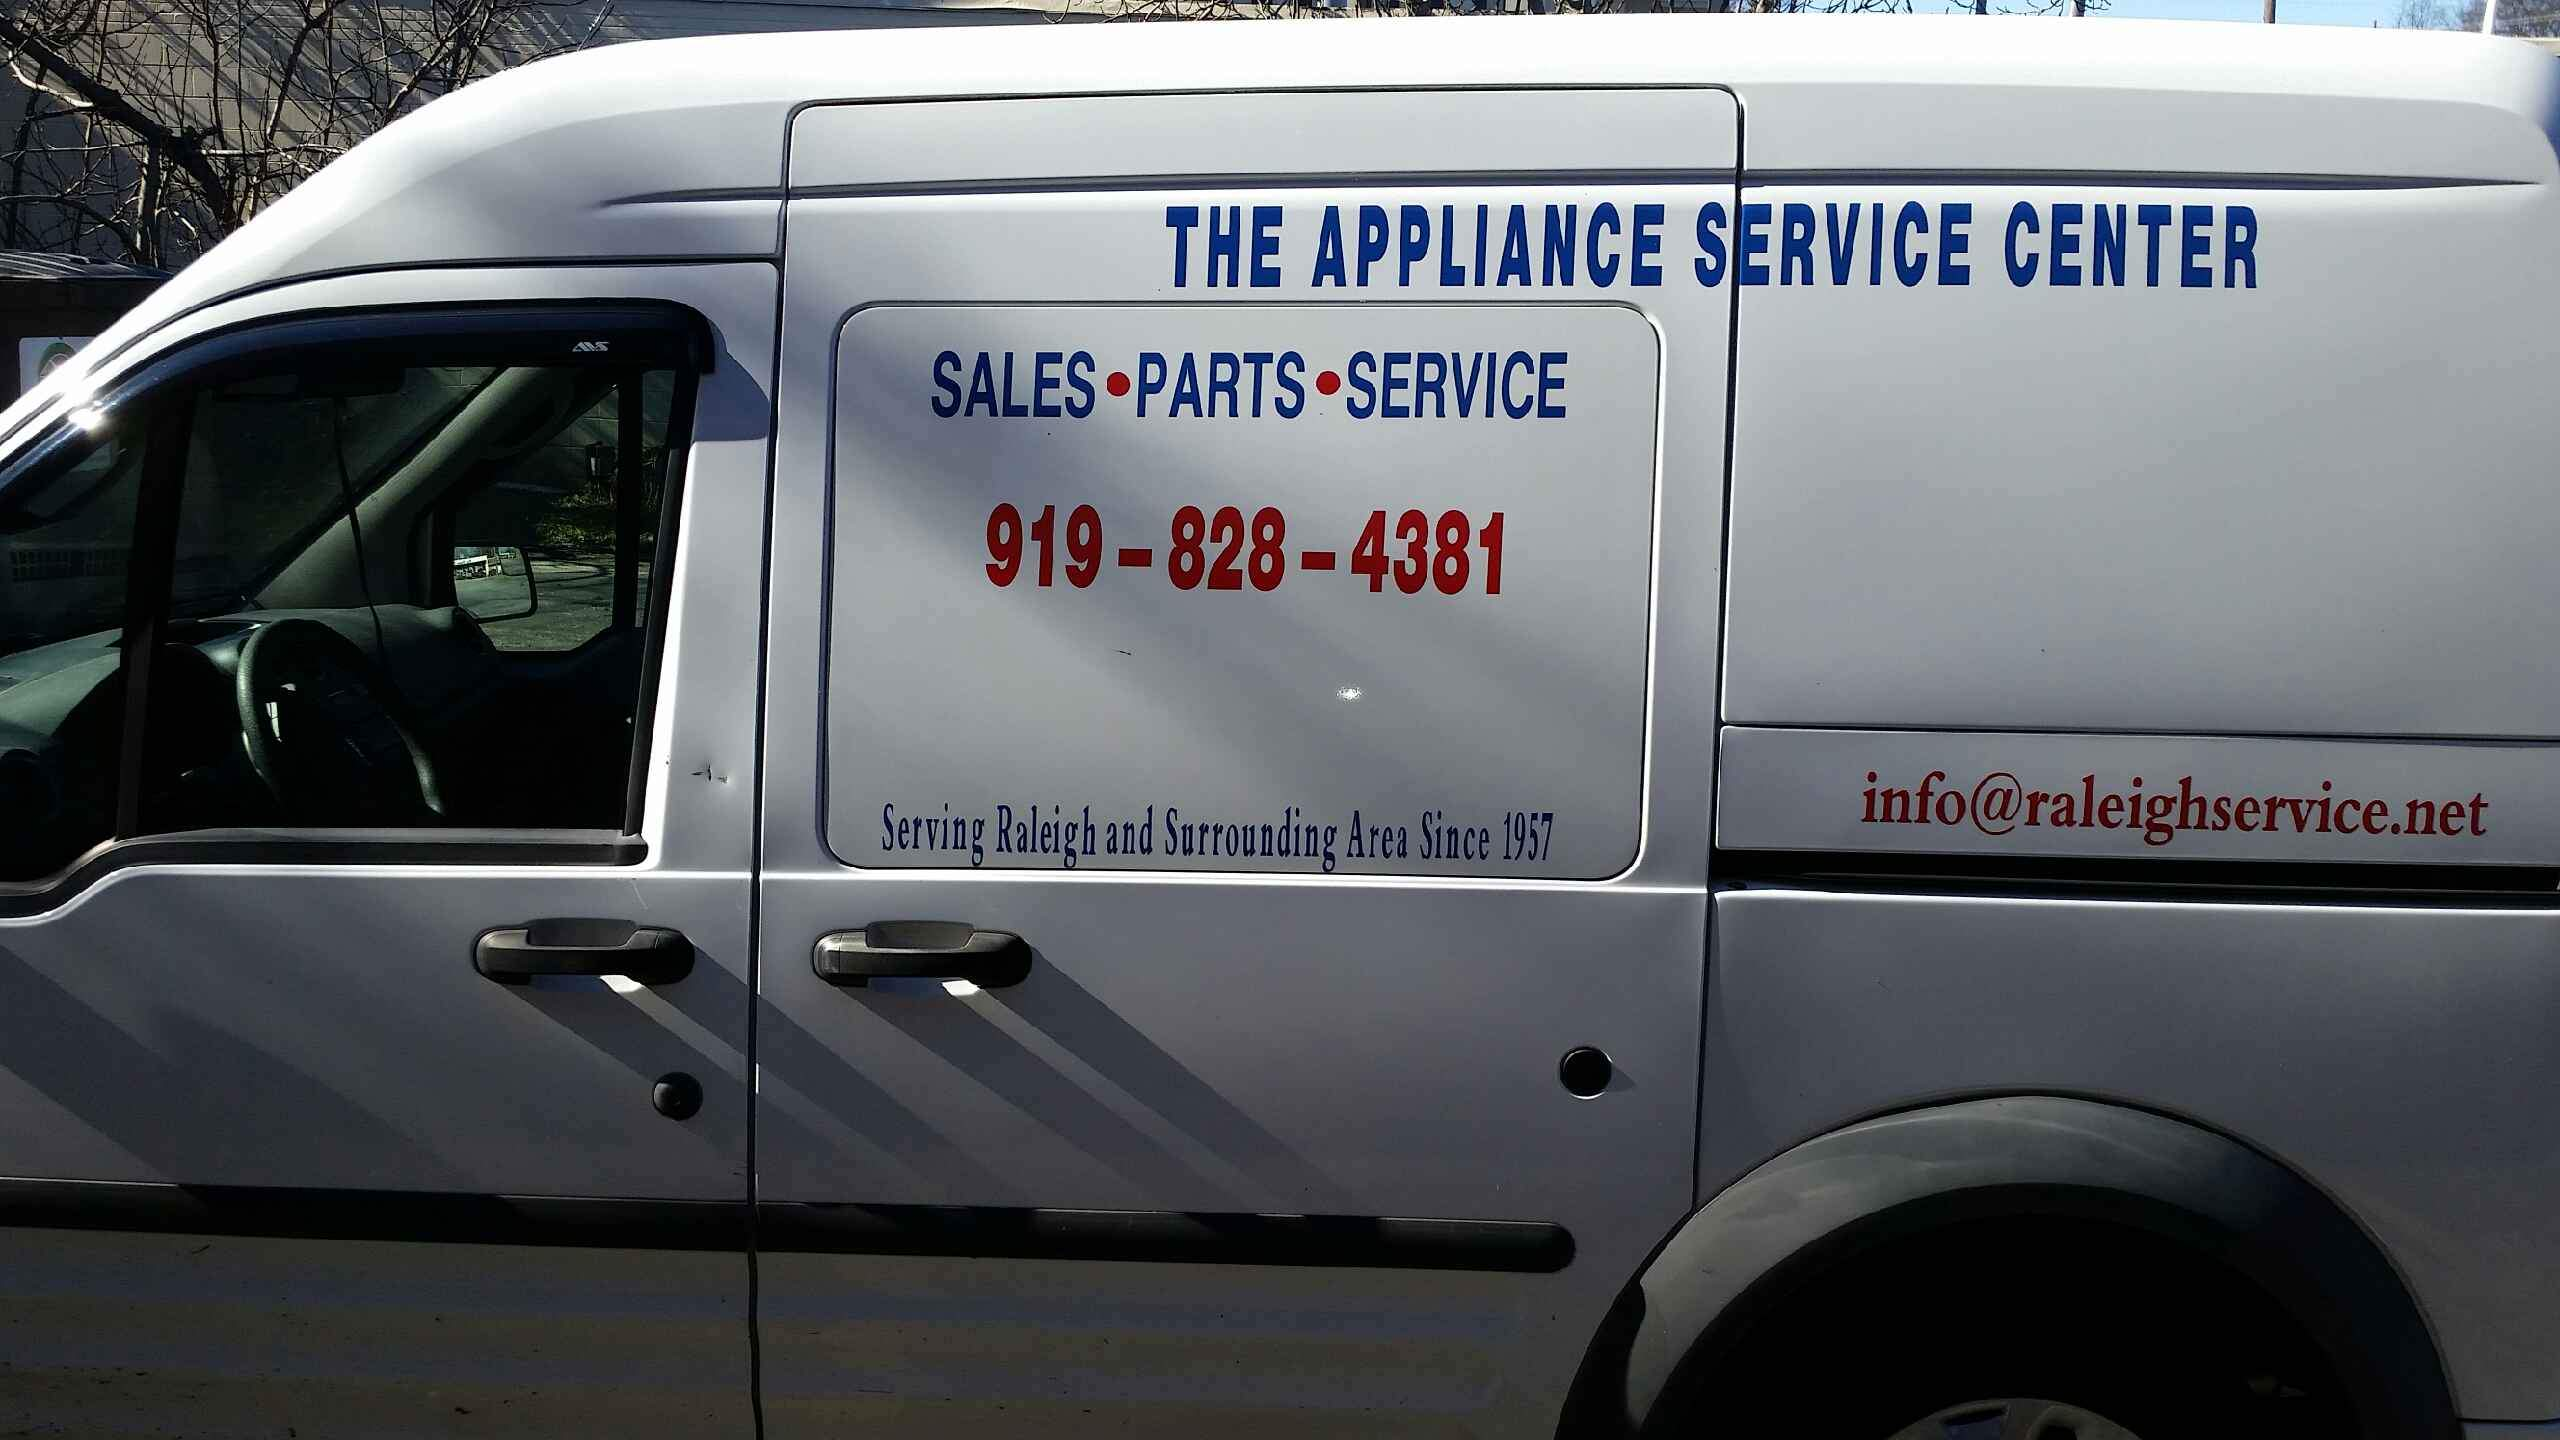 Appliances Raleigh The Appliance Service Center Of Raleigh Appliance Repair